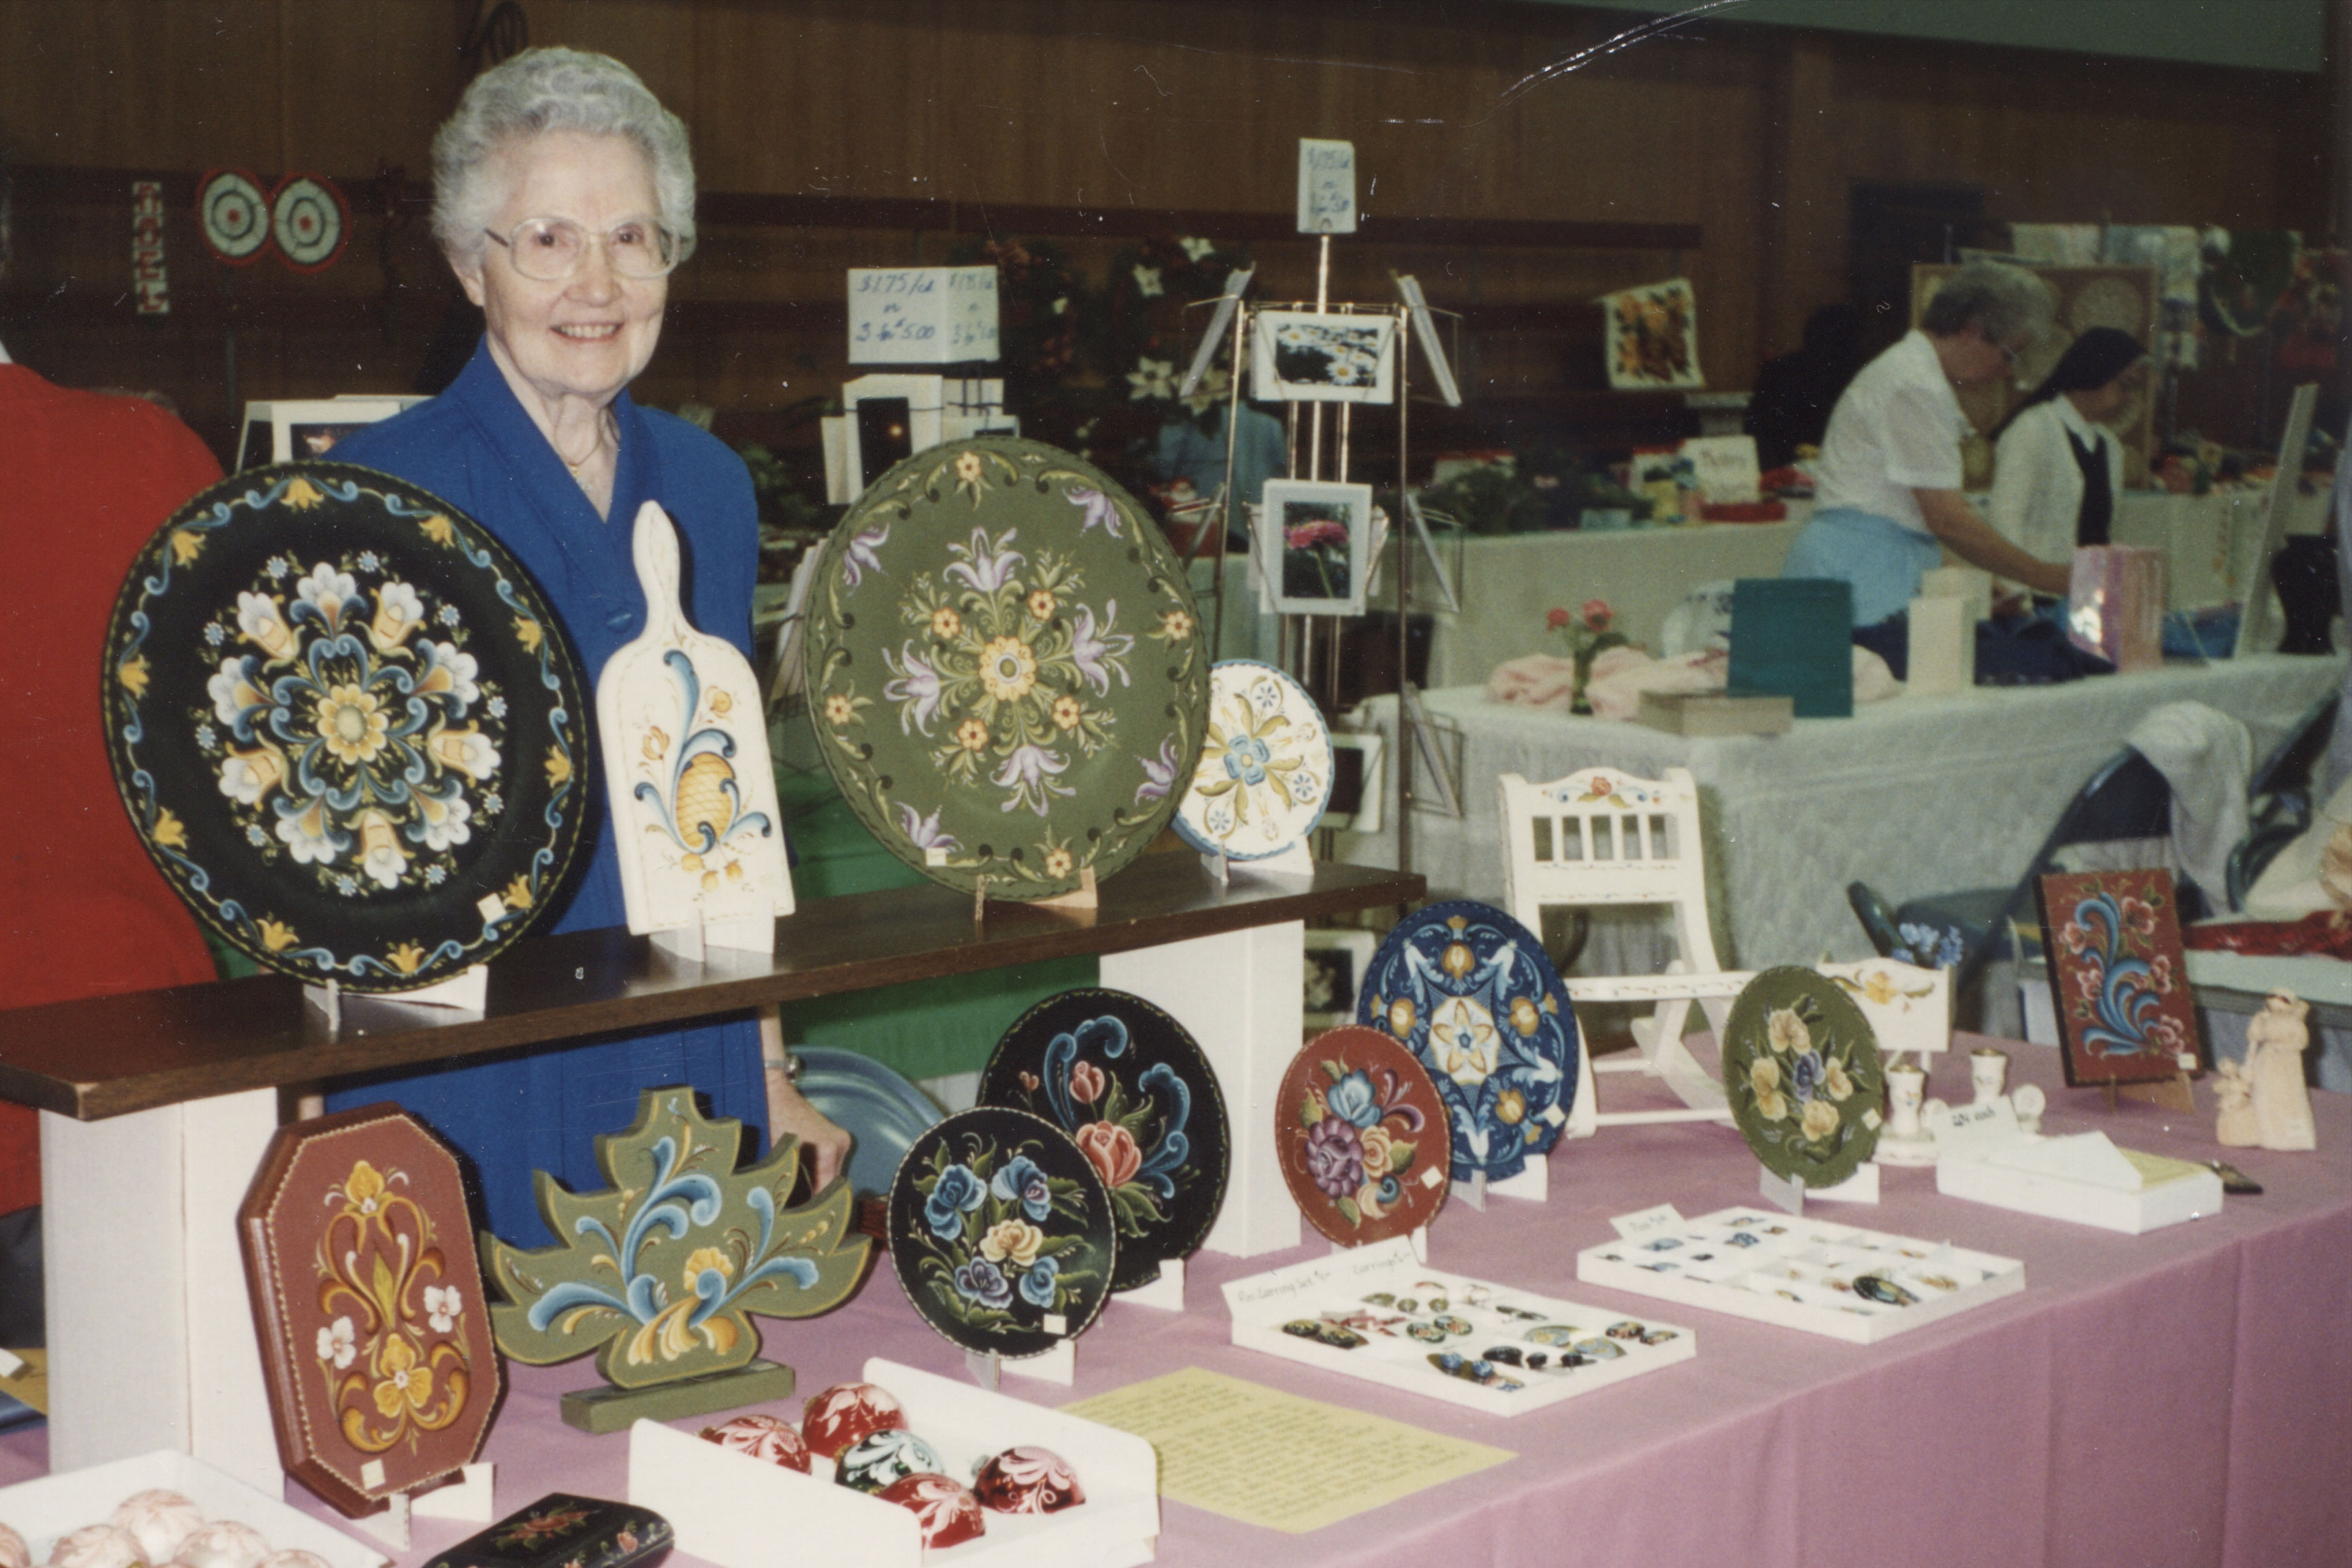 Sister Mercita Reinbold displays her rosemaling wares at the 1994 Craft Fair, held in the Loyola High School gym.